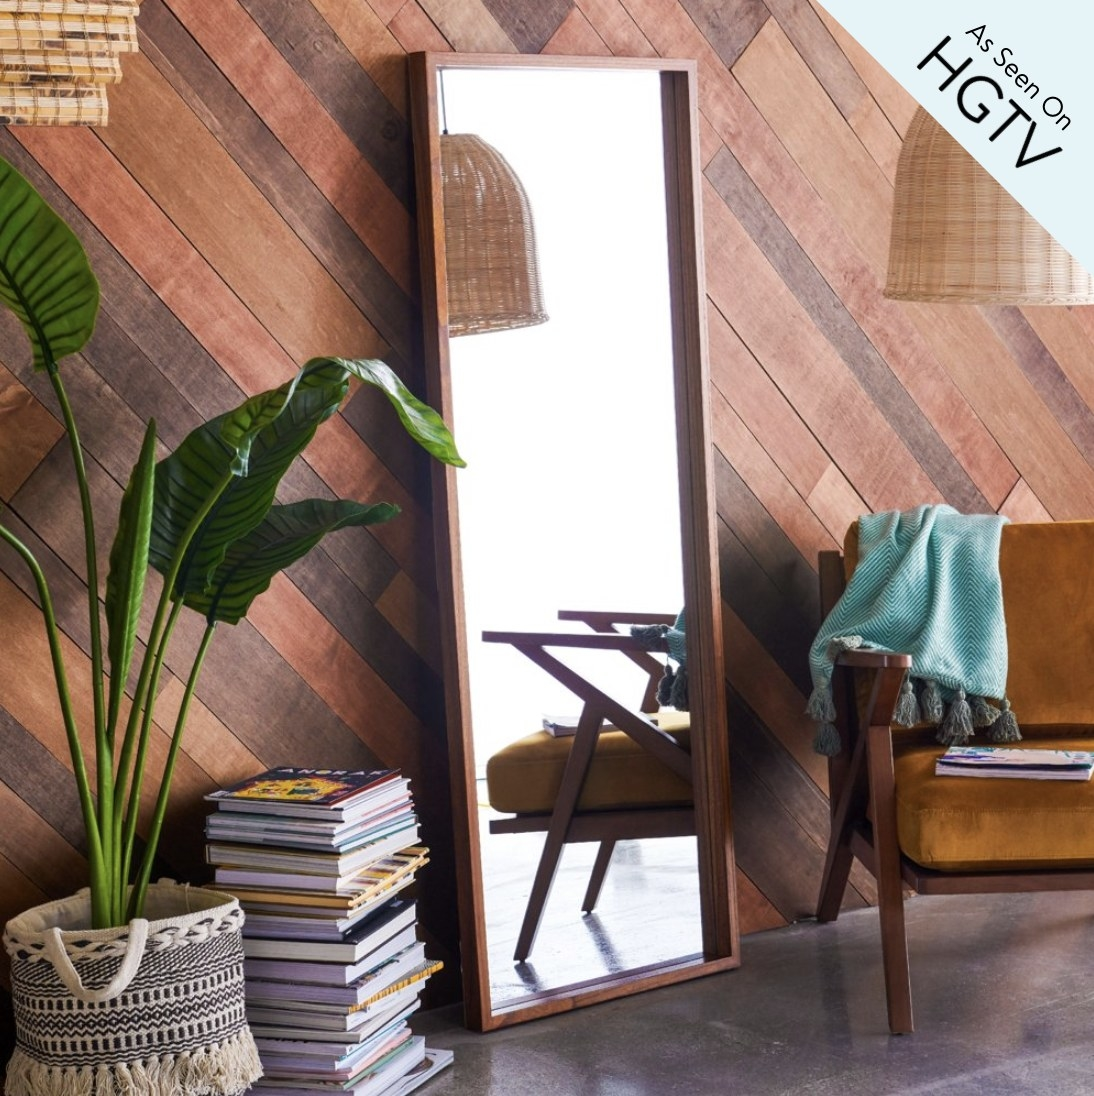 A floor mirror with a wooden frame leaning against a wall in a living space next to a chair and books